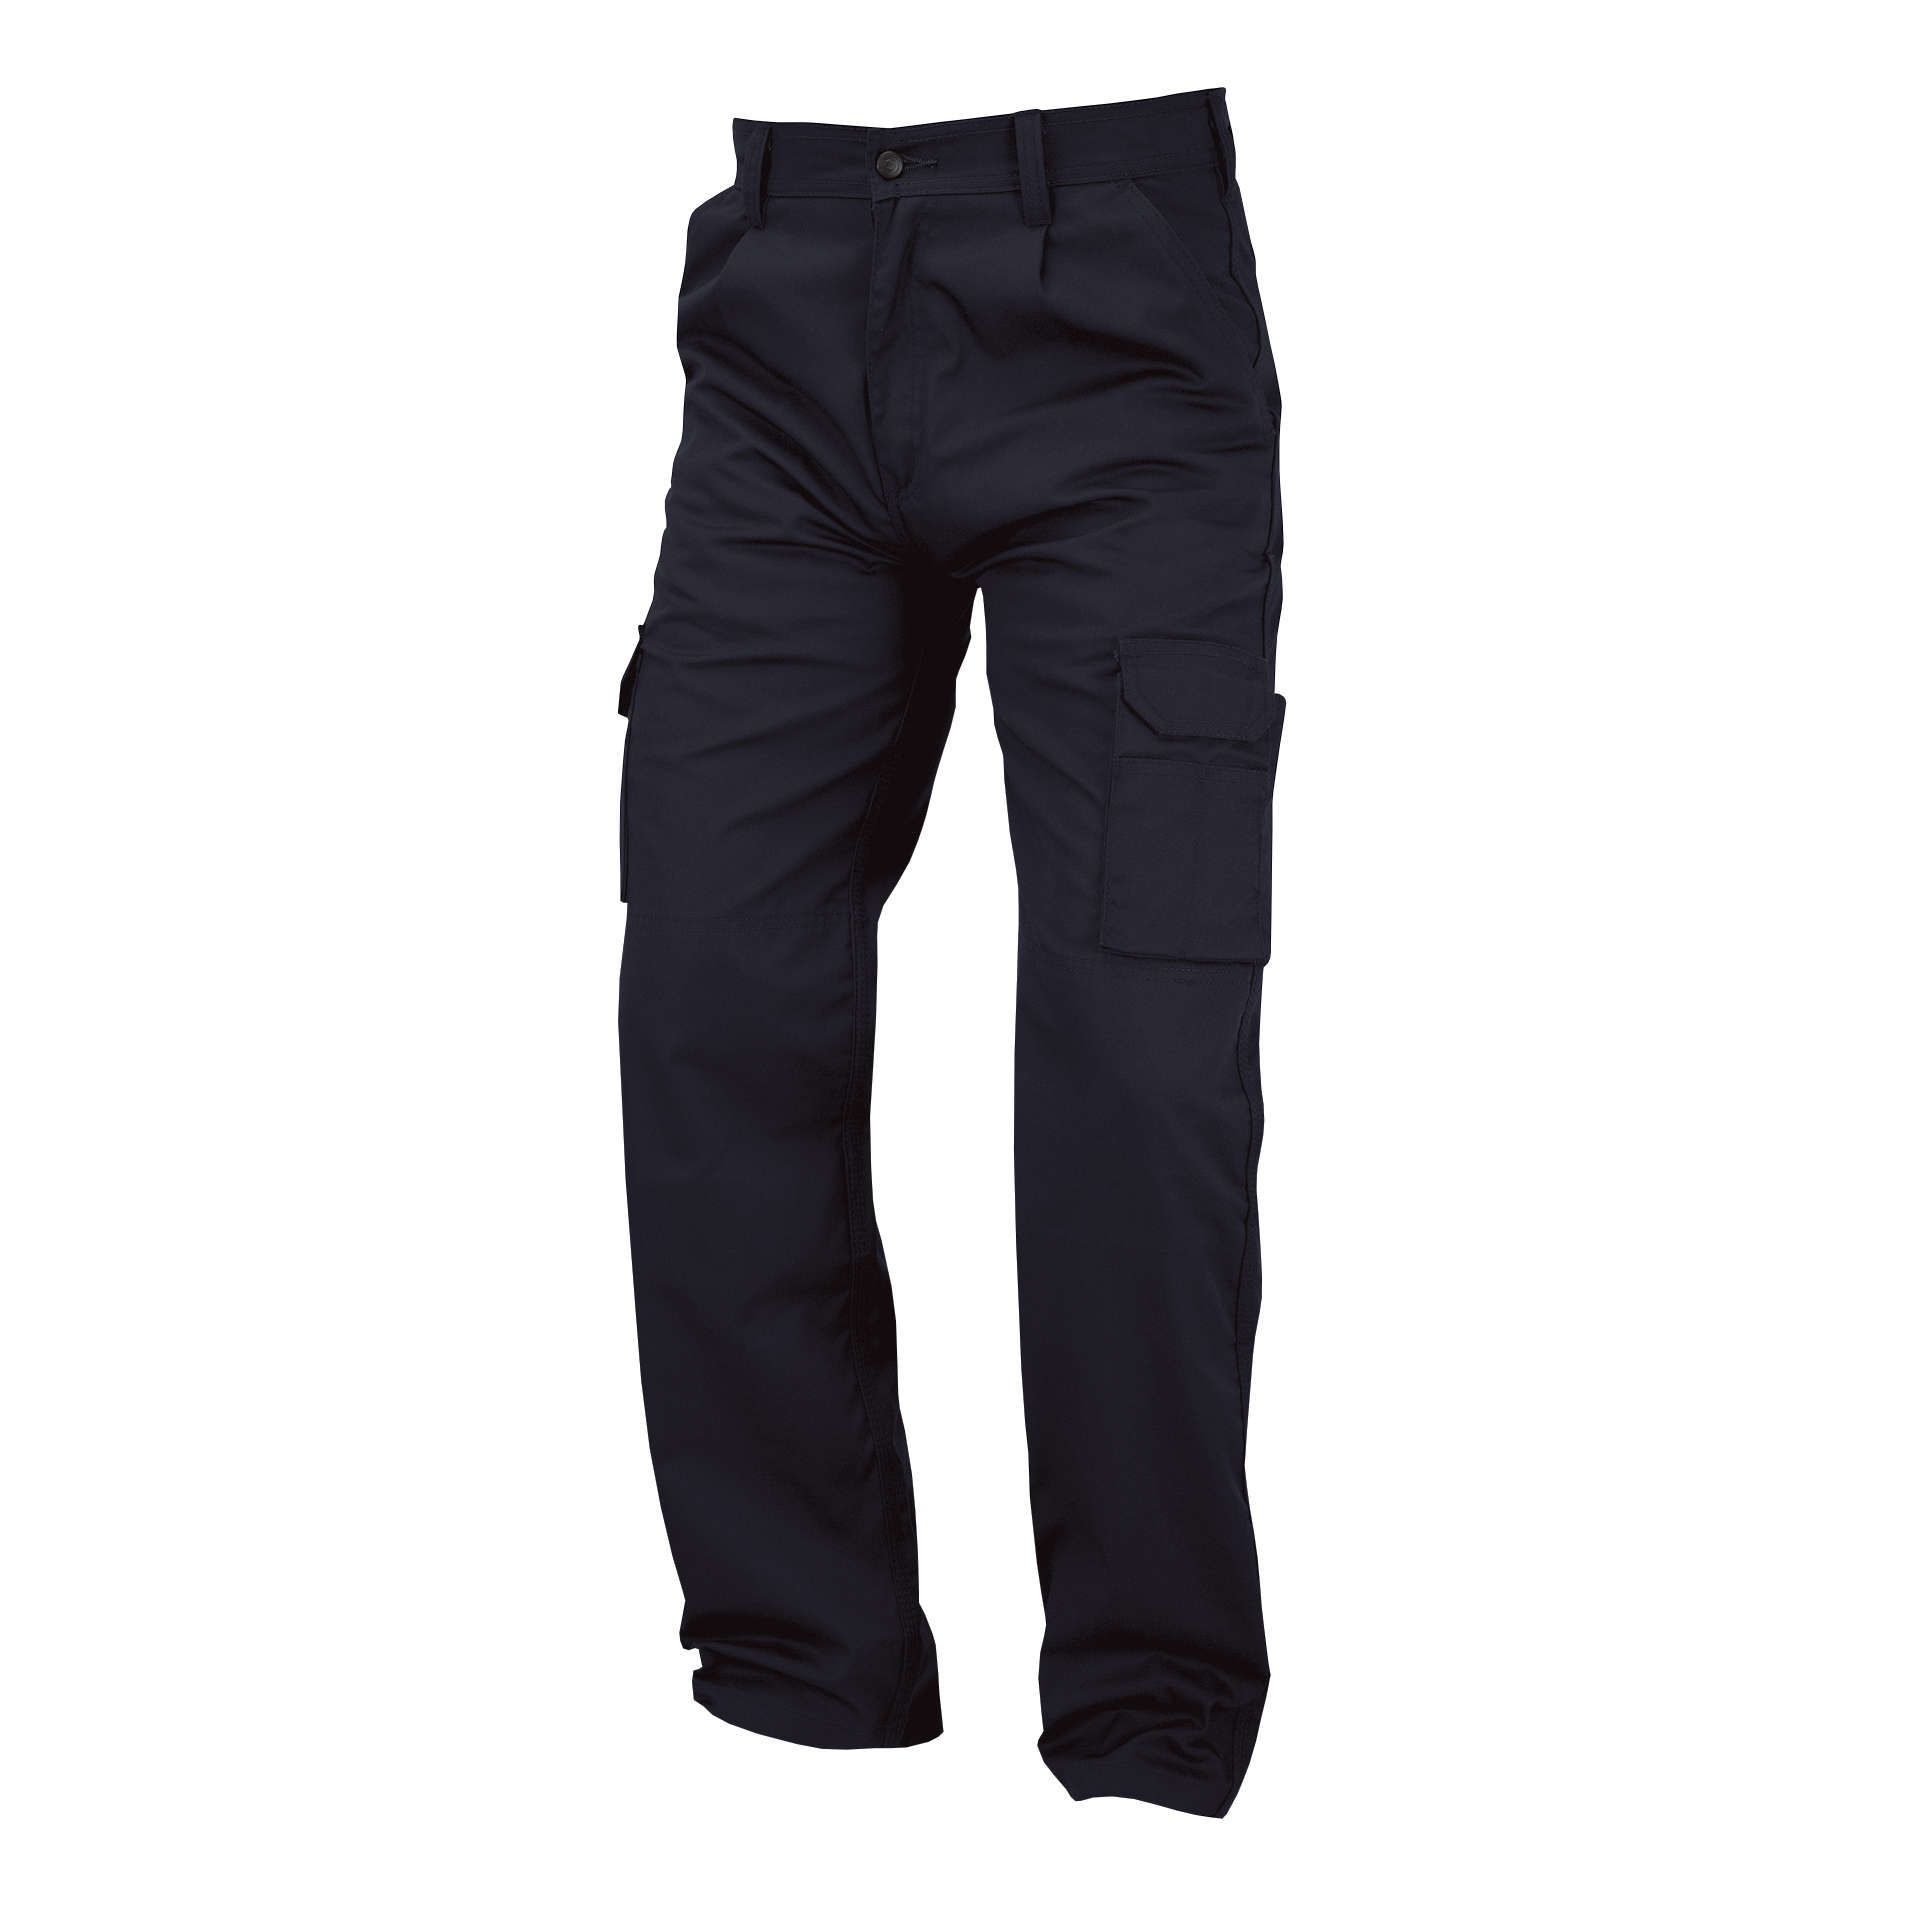 Business Kneepad Combat Trouser Multi-functional Waist 48in Leg 35in Navy